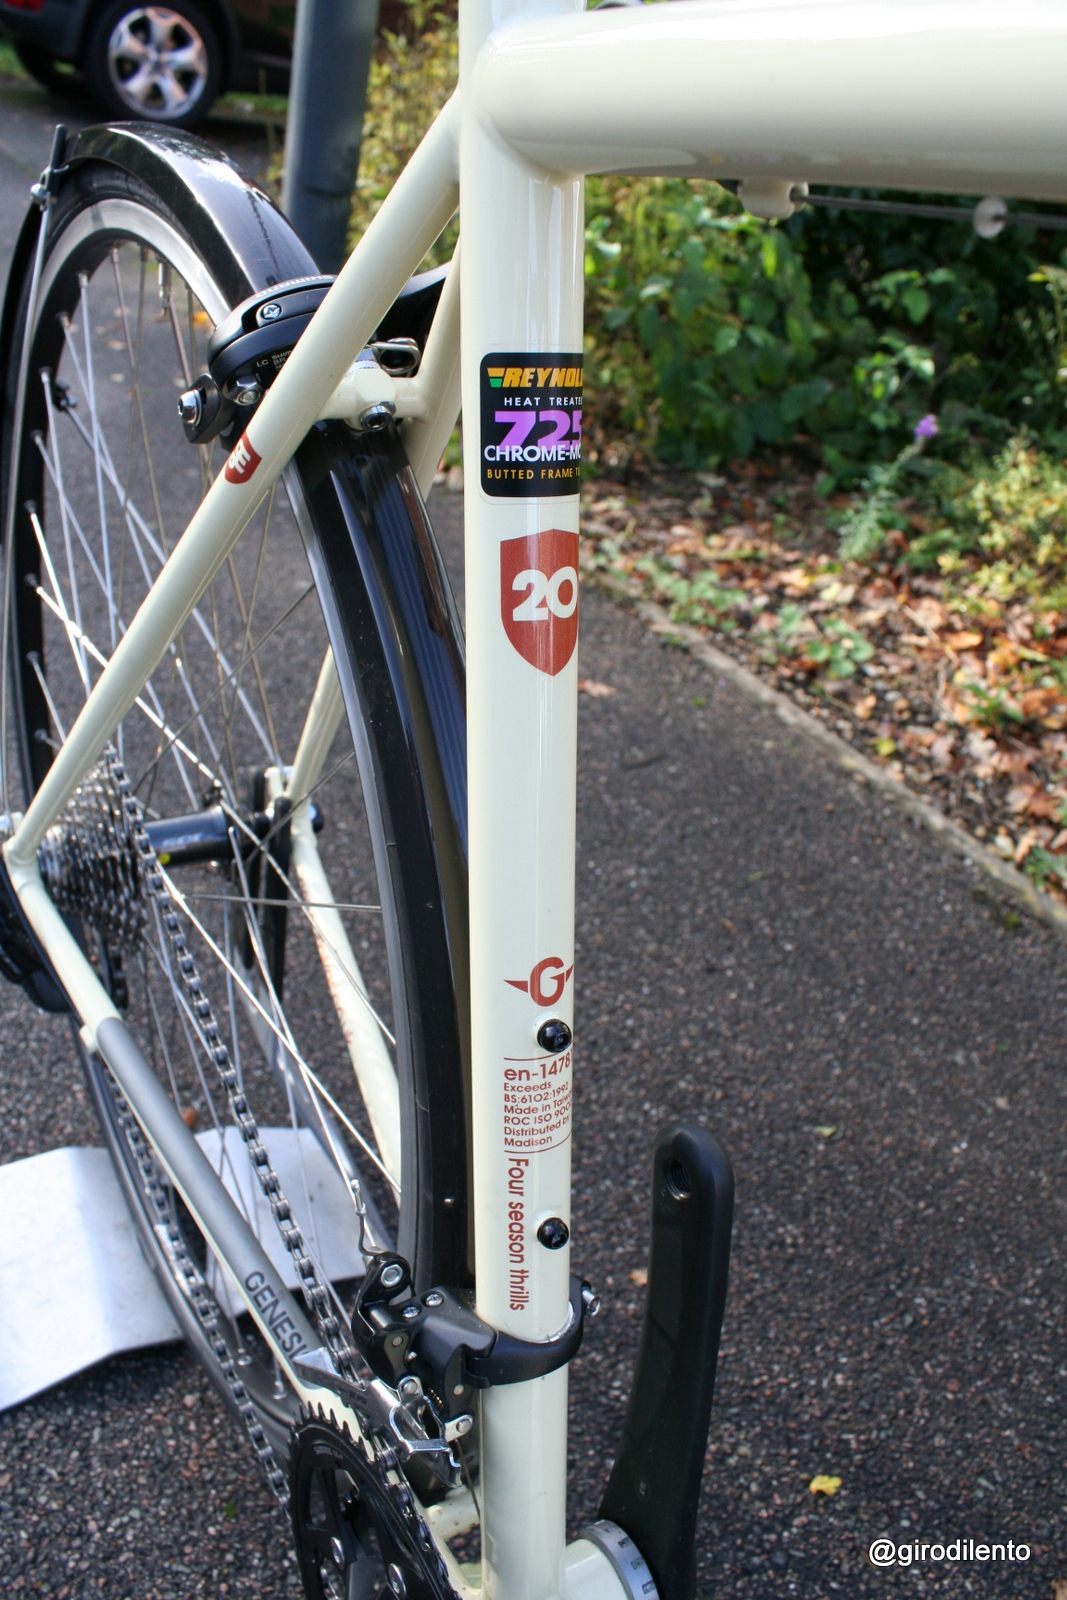 Seat tube details